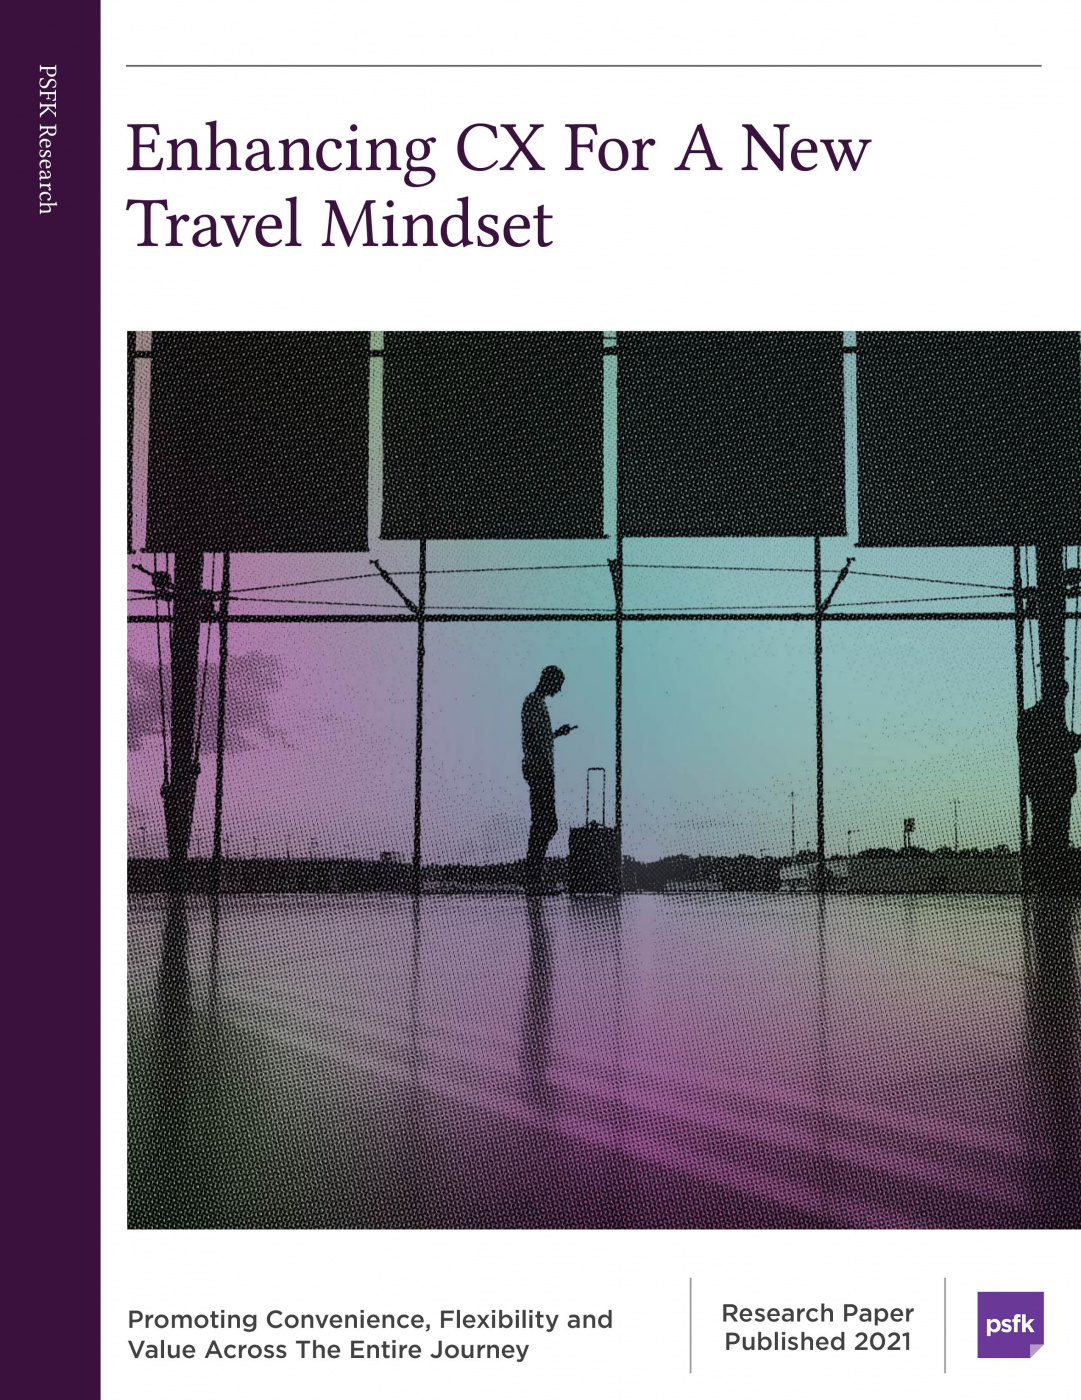 Enhancing CX For A New Travel Mindset